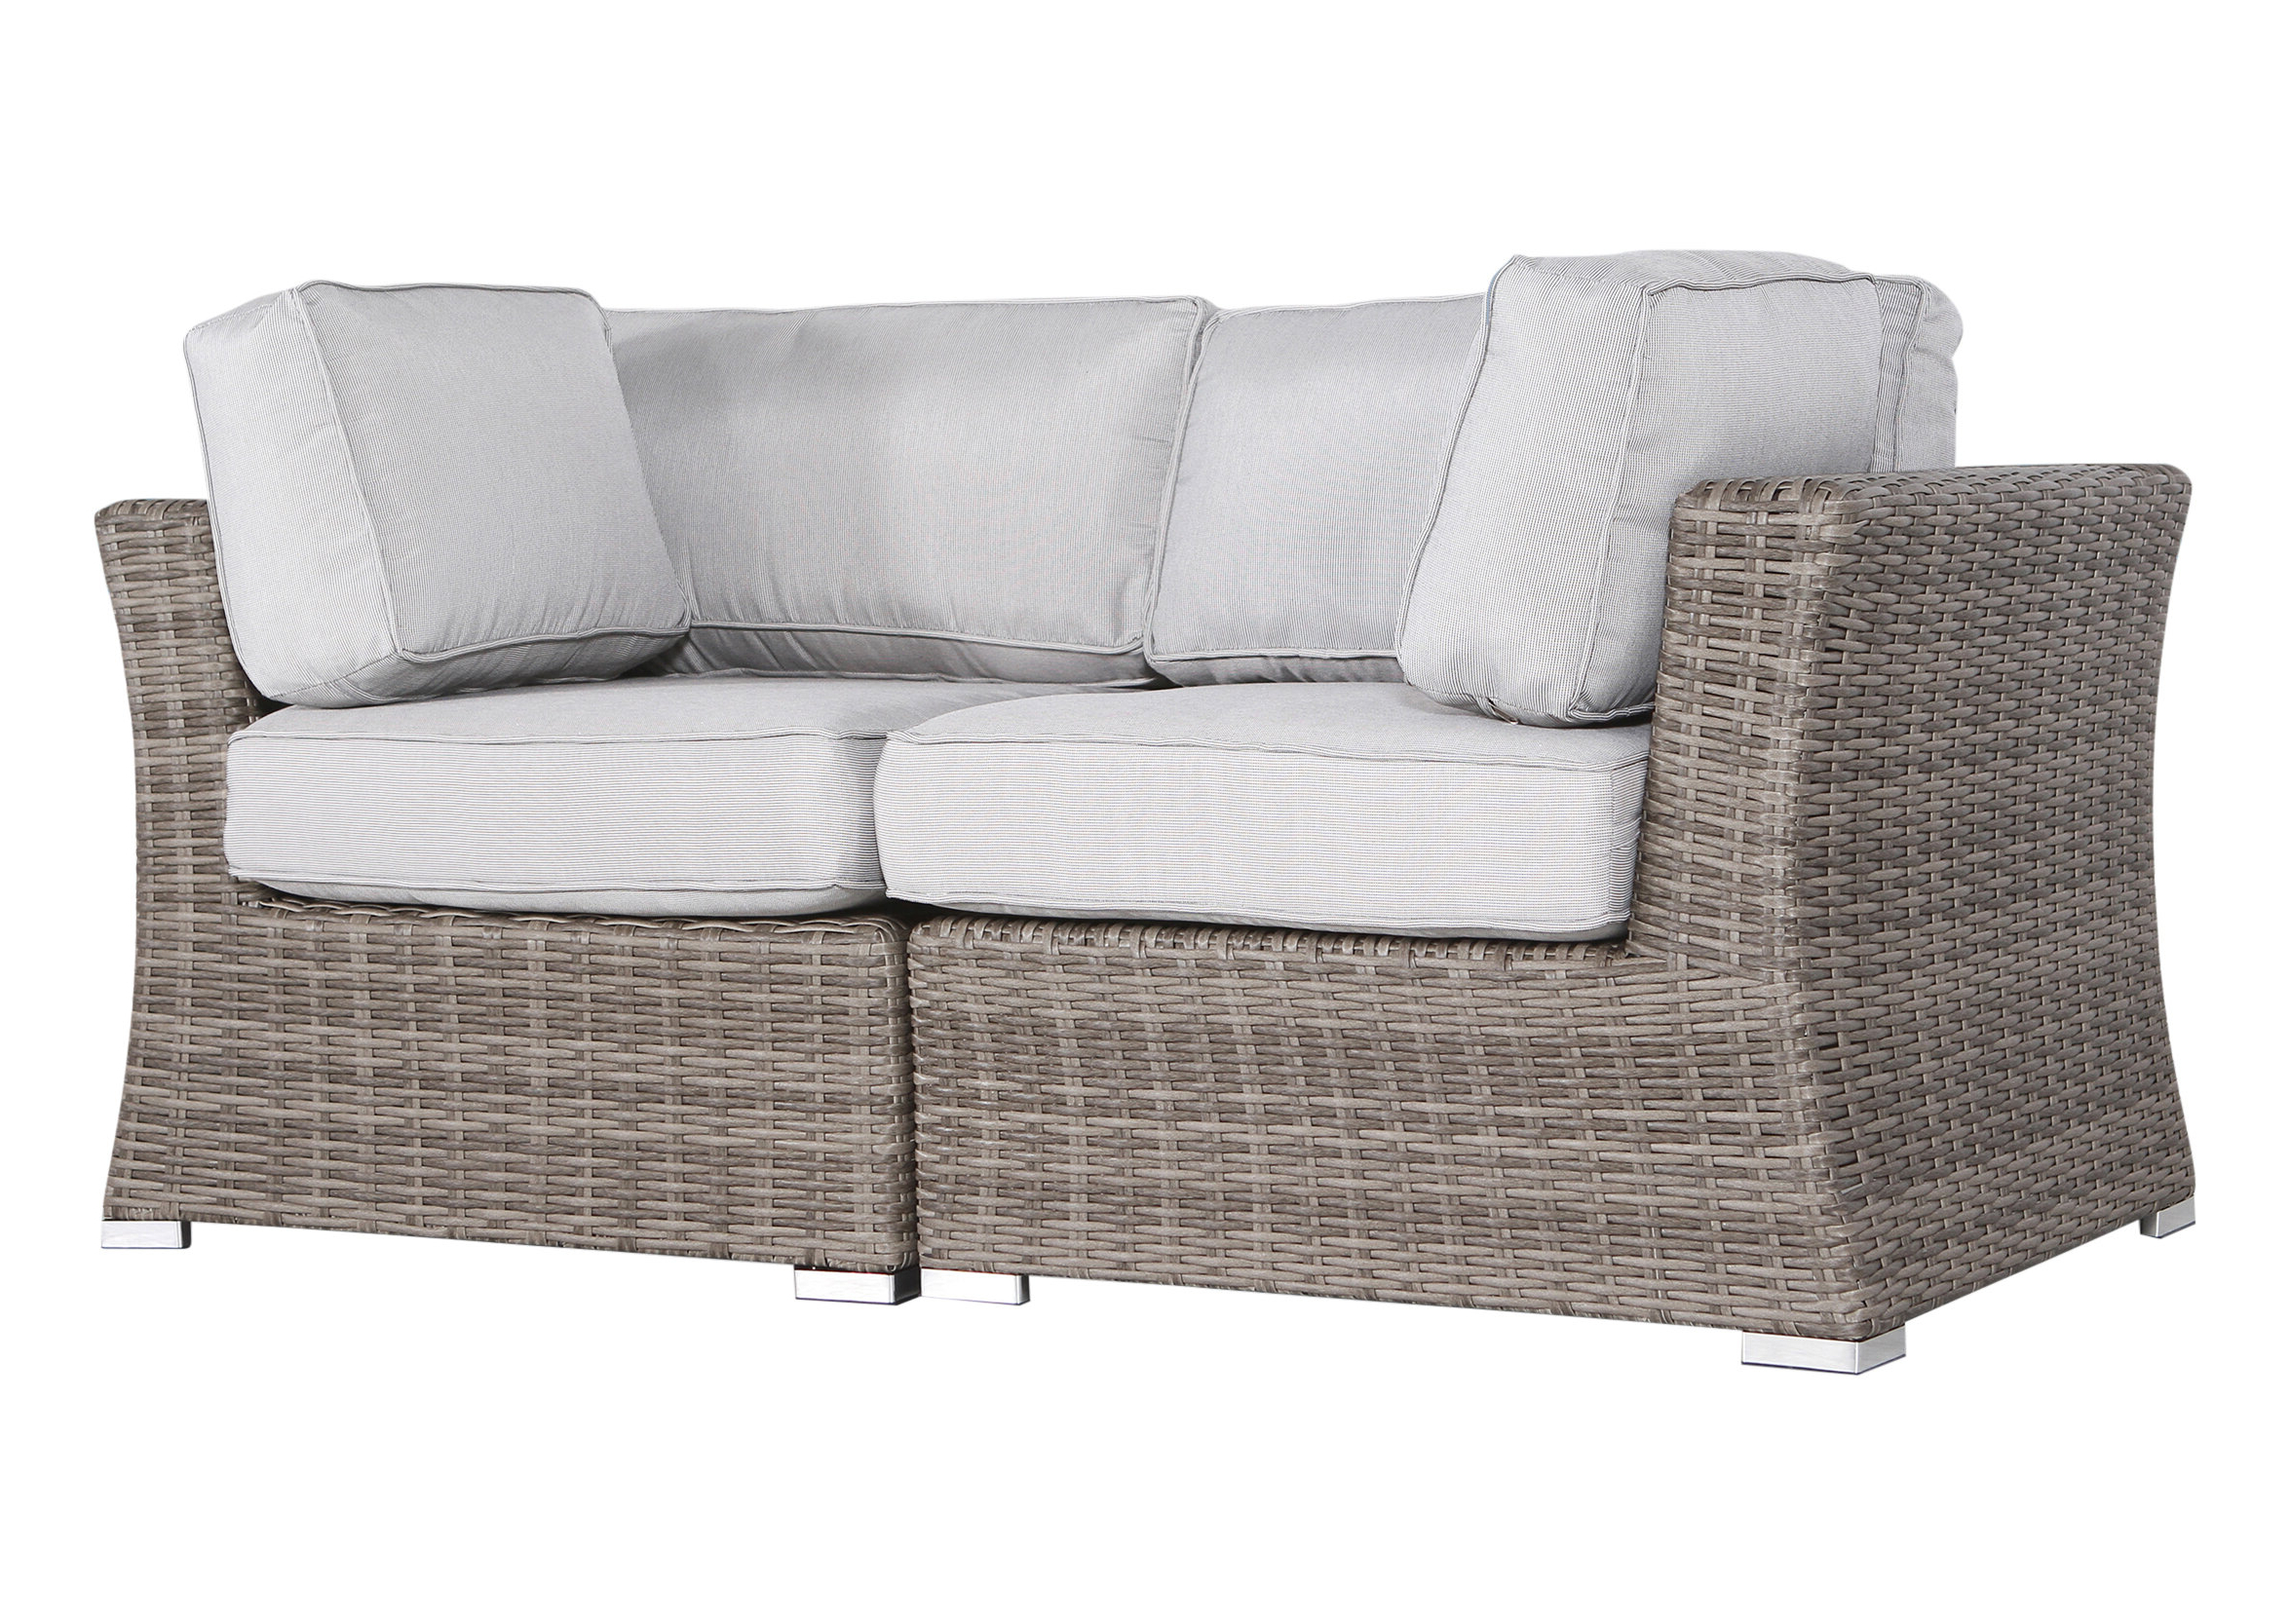 Huddleson Loveseats With Cushion Pertaining To Trendy Huddleson Contemporary Loveseat With Cushion (View 4 of 20)